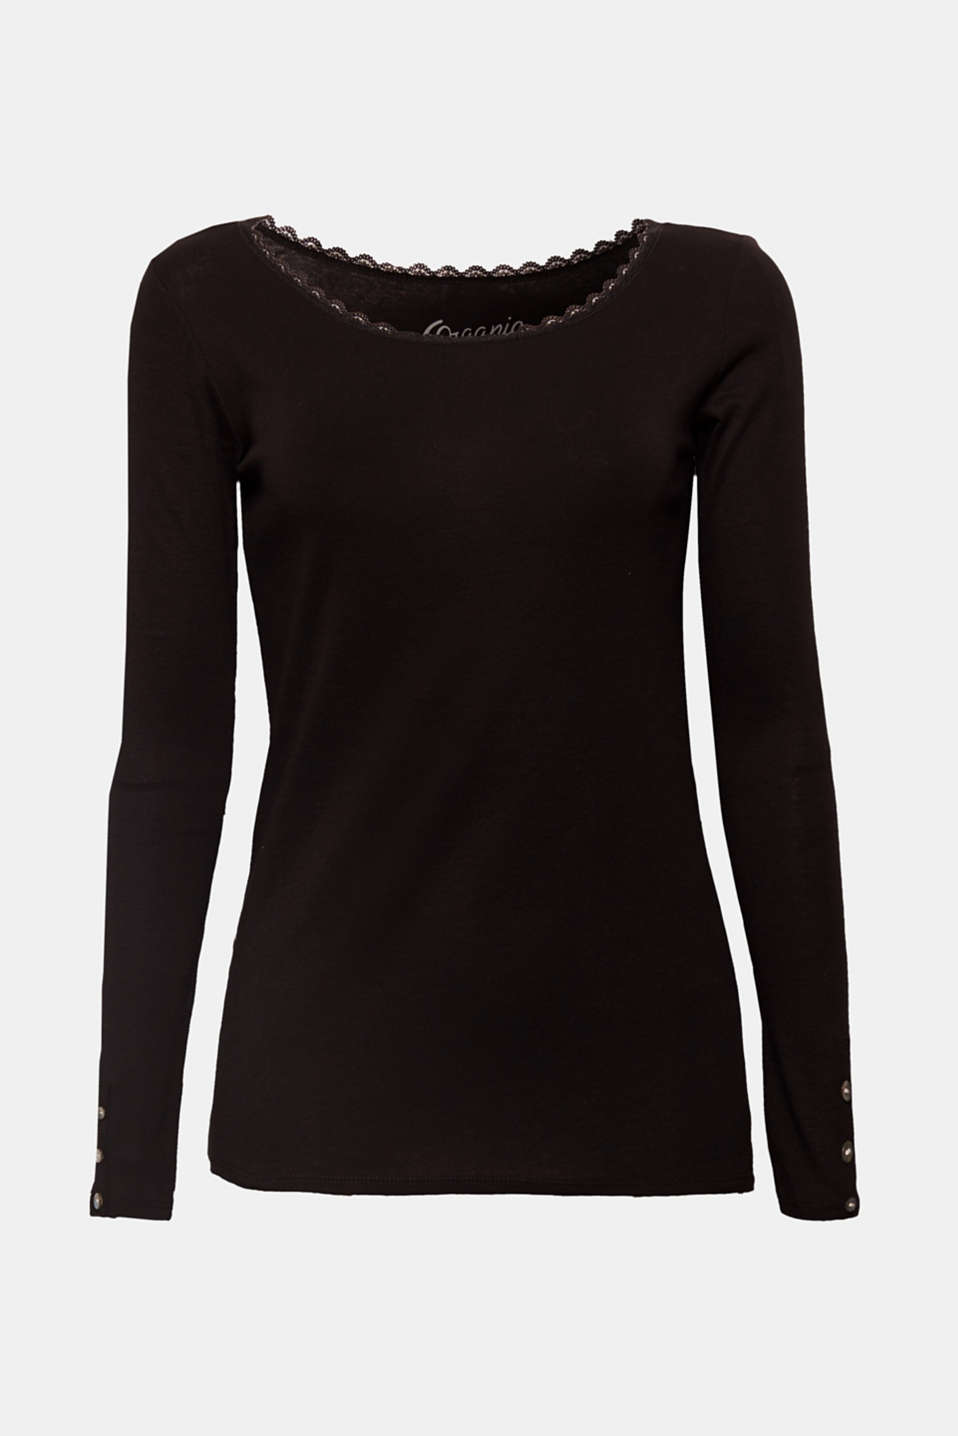 Your basic T-shirt with a little touch of romance! The delicate lace on the round neck gives this long sleeve top its slightly playful, feminine touch.